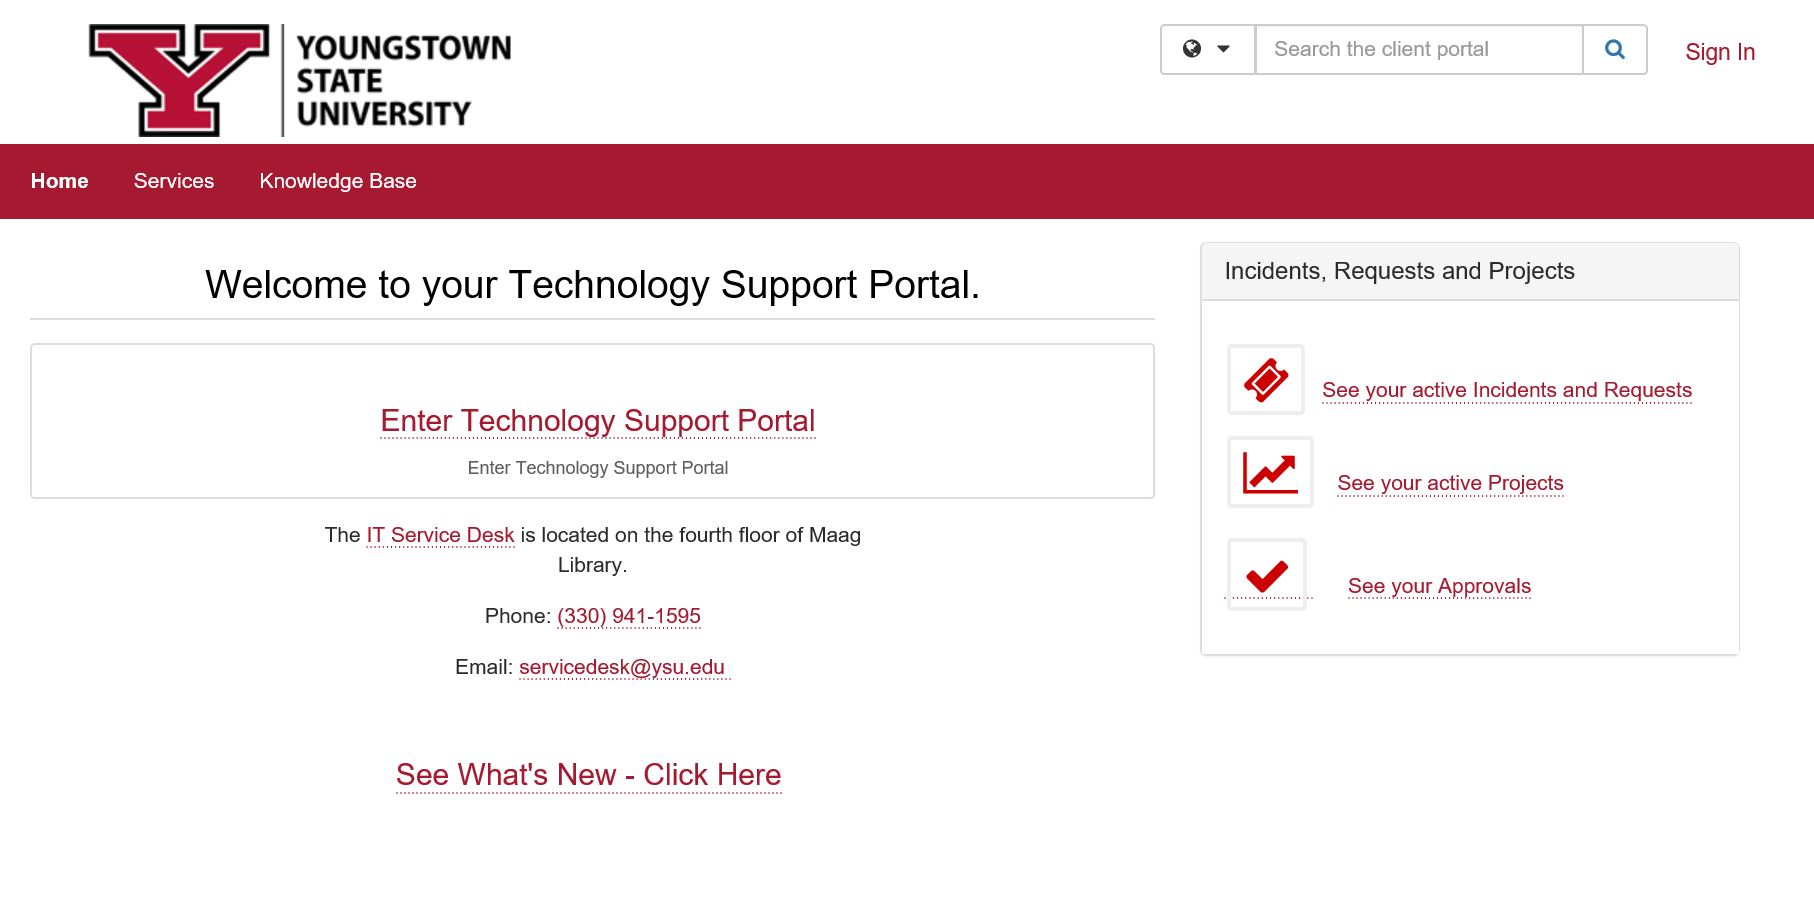 Technology Support Portal homepage